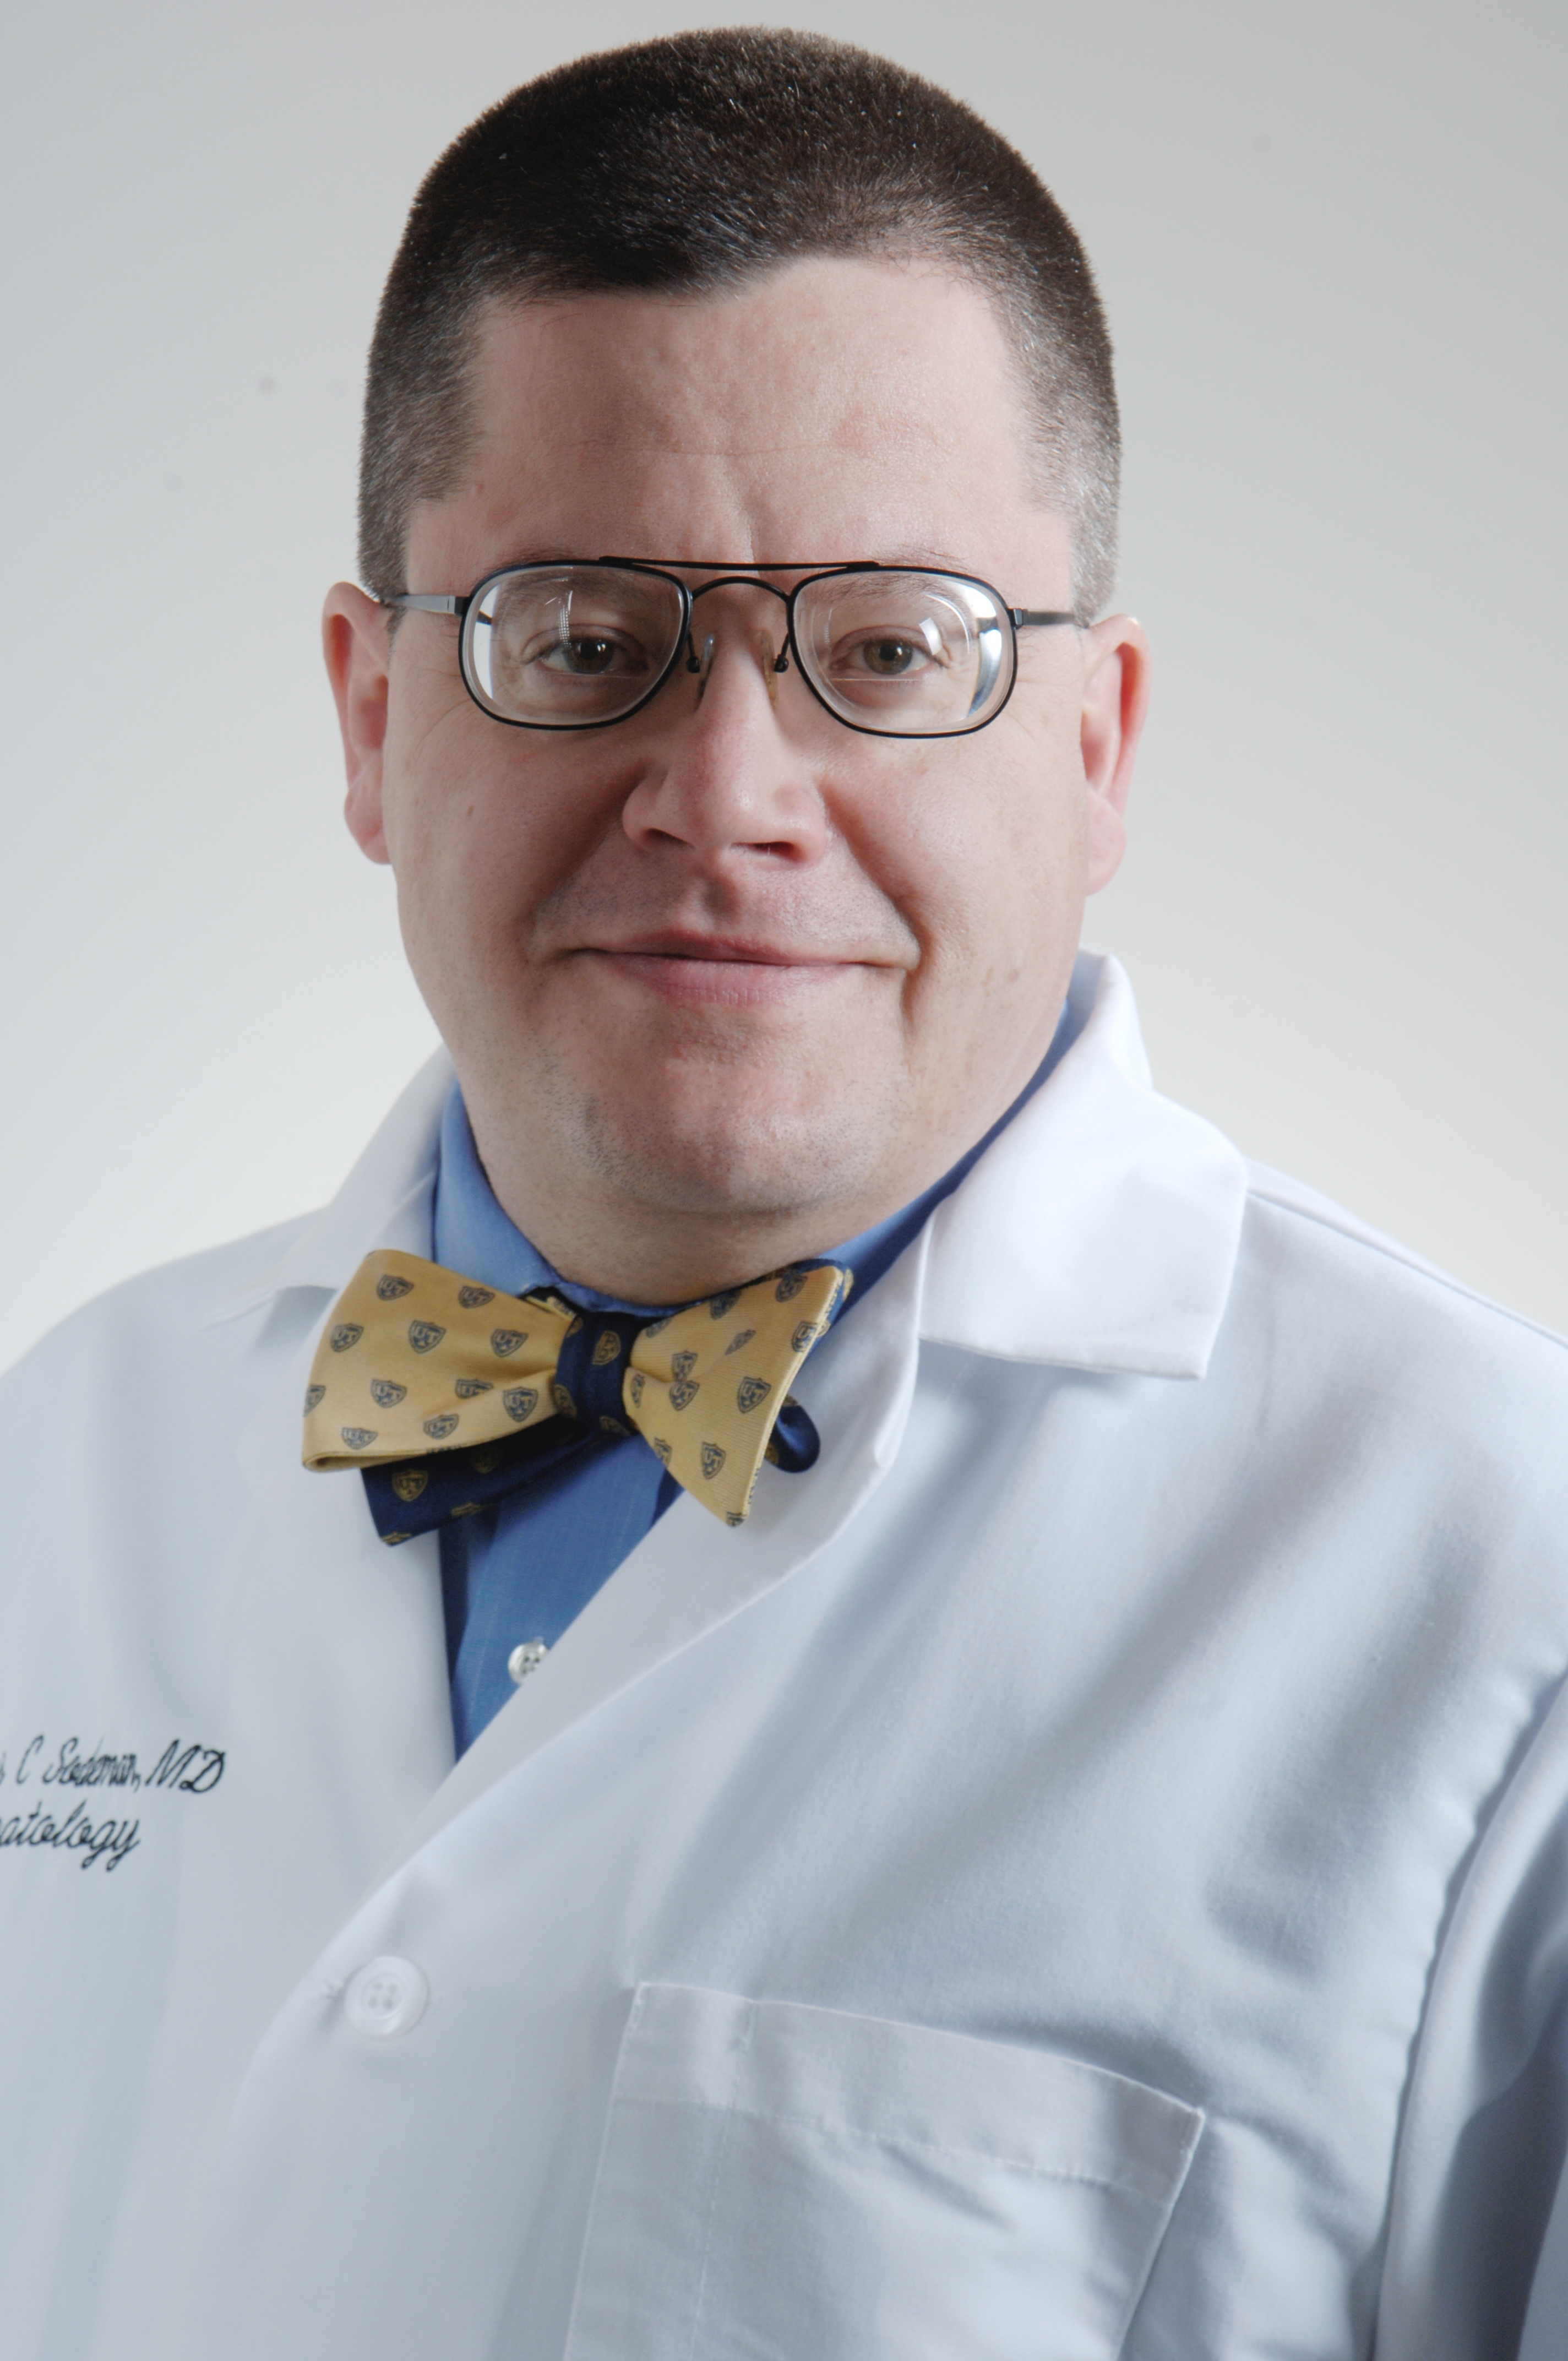 Dr. Sodeman Picture